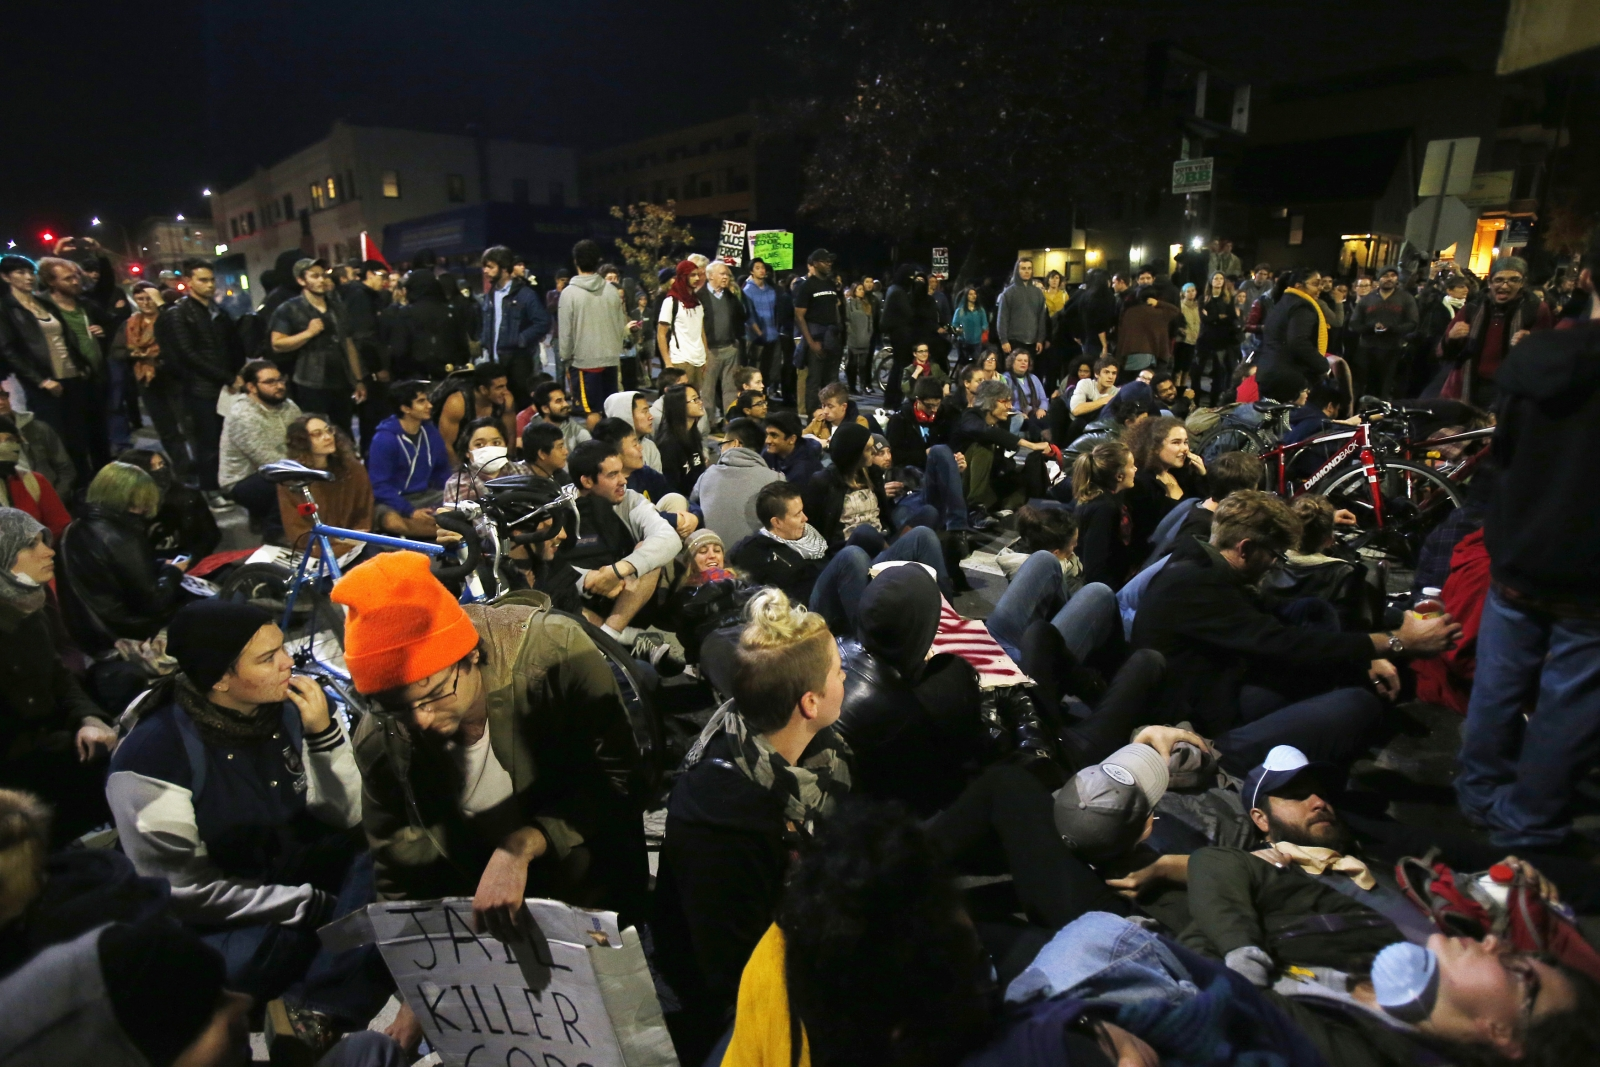 Eric Garner Death: Berkeley Protesters clash with Police